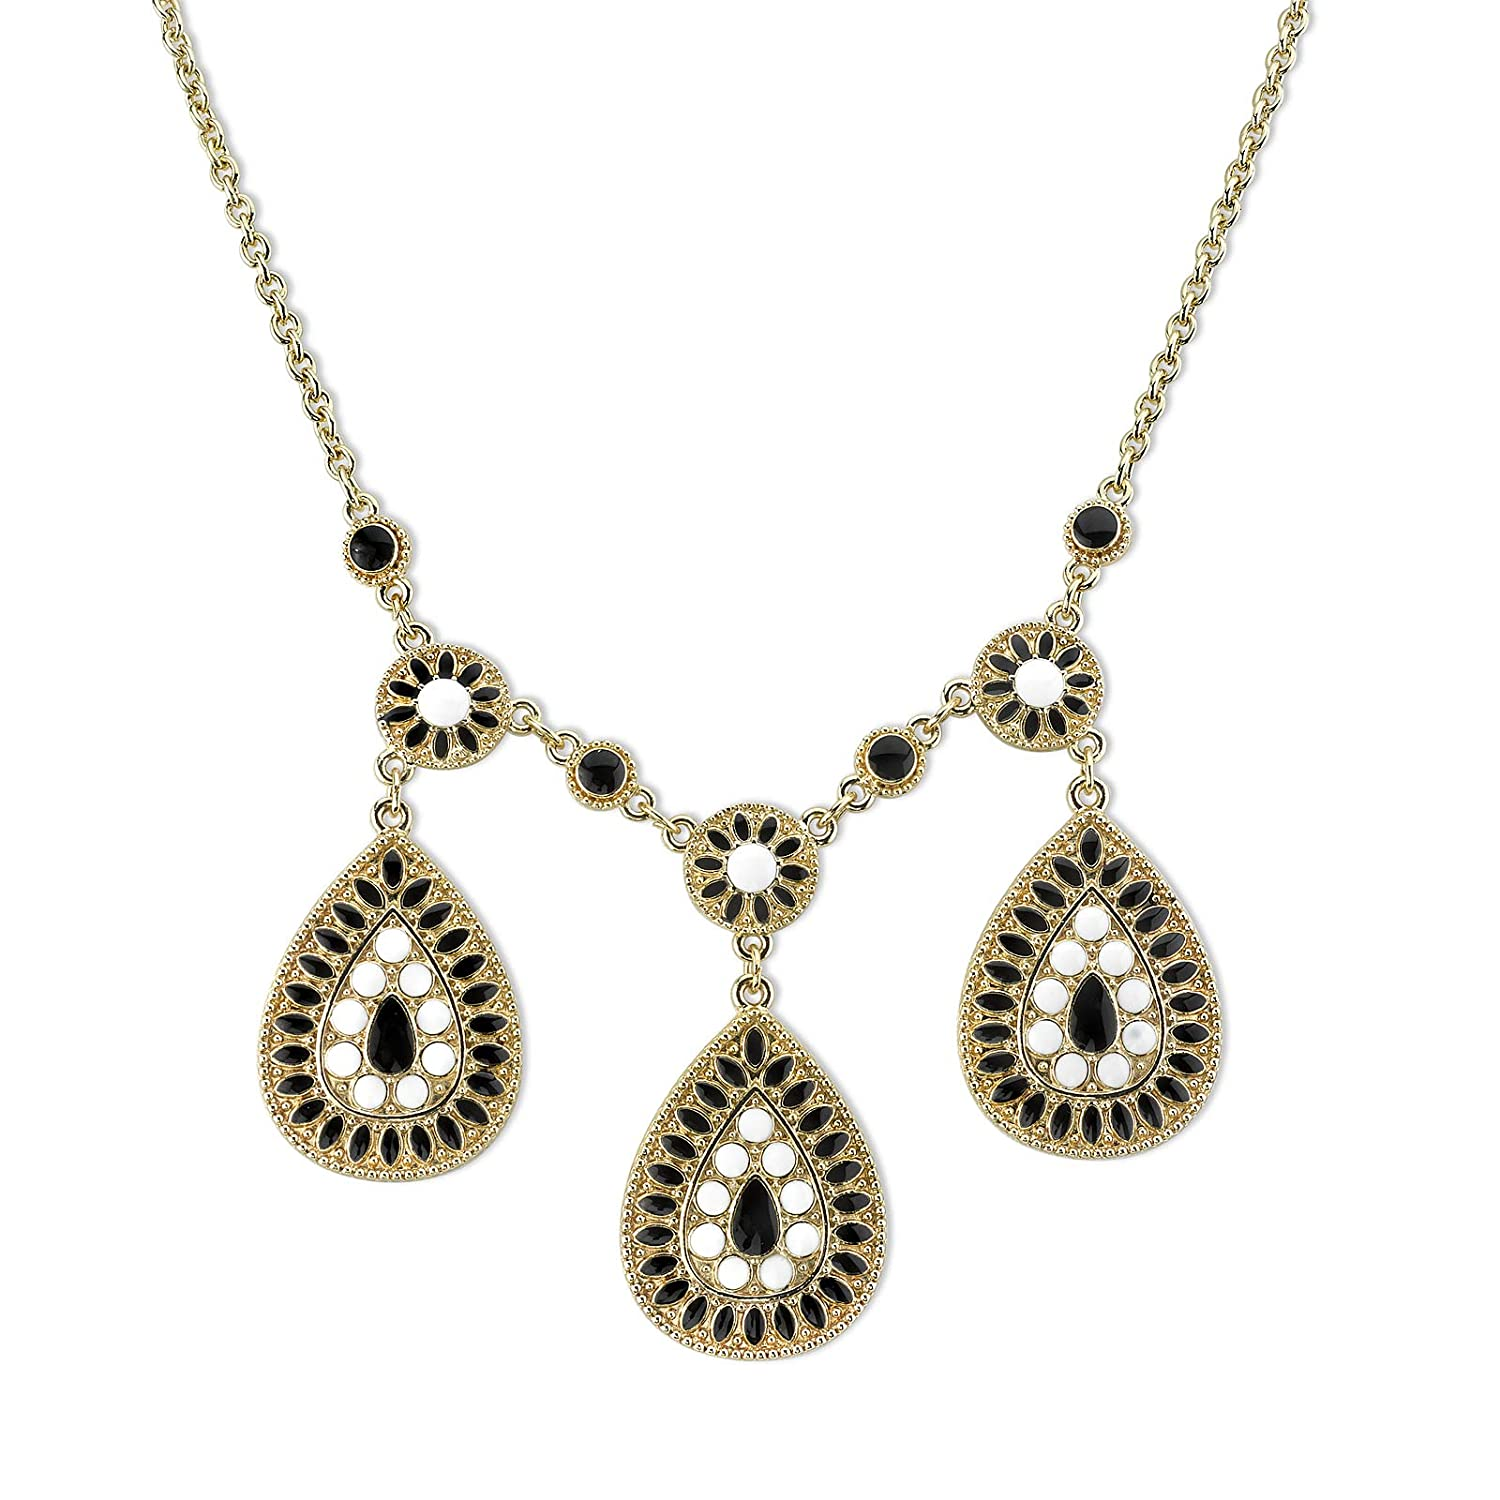 1928 Jewlery Gold-Tone Black and White Enamel Pearshape Drop Necklace 16 Adj.